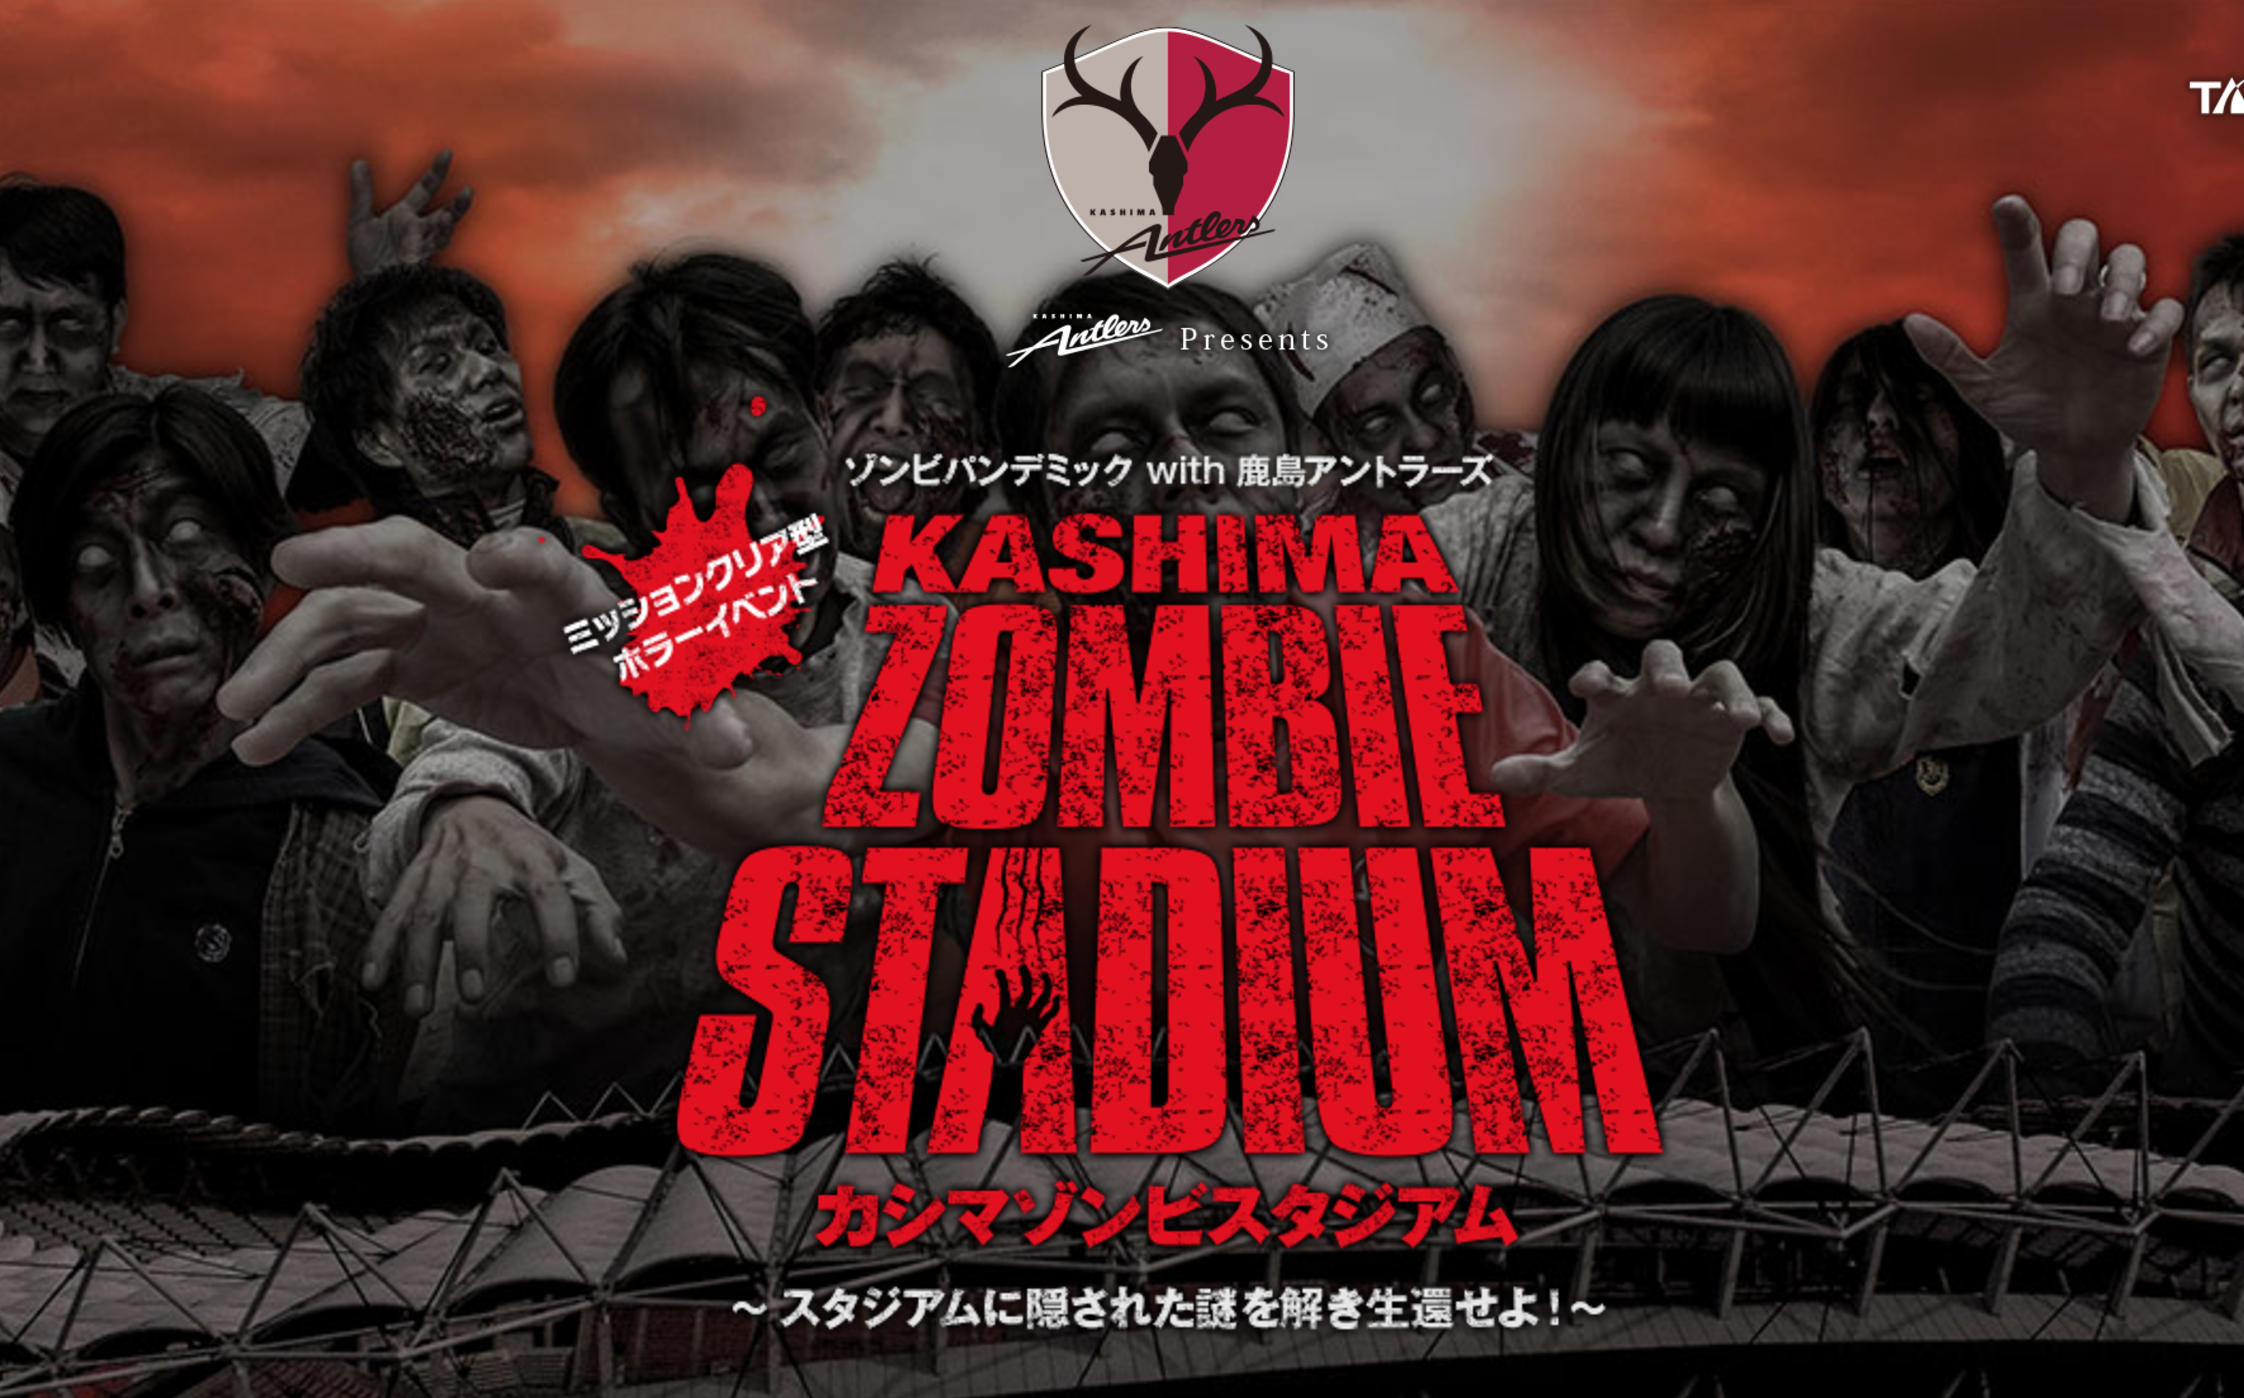 VIDEO: Kashima Antlers scare up 'Zombie Stadium' event featuring club legends